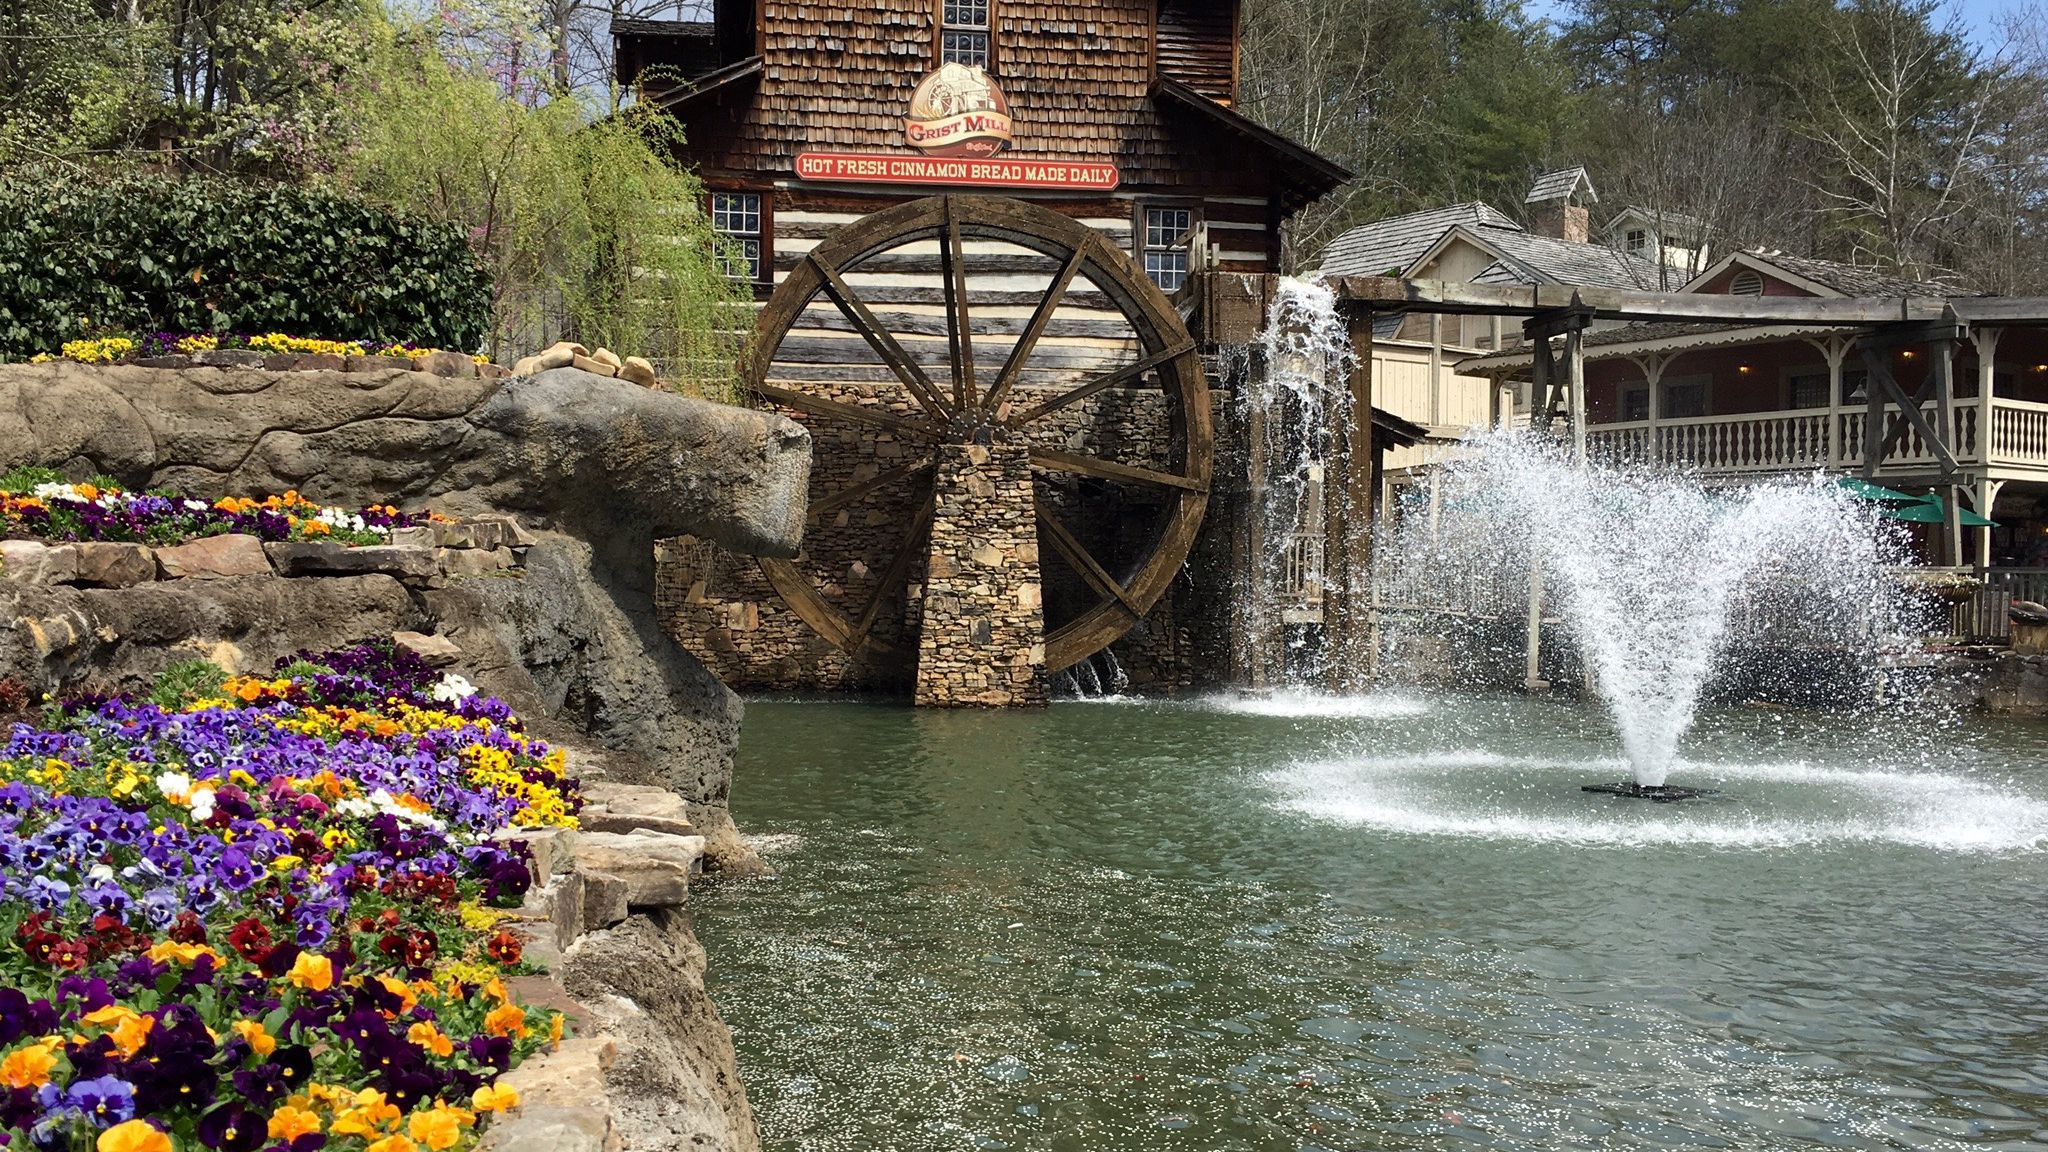 Dollywood - The Complete Guide to Dolly Parton's Park